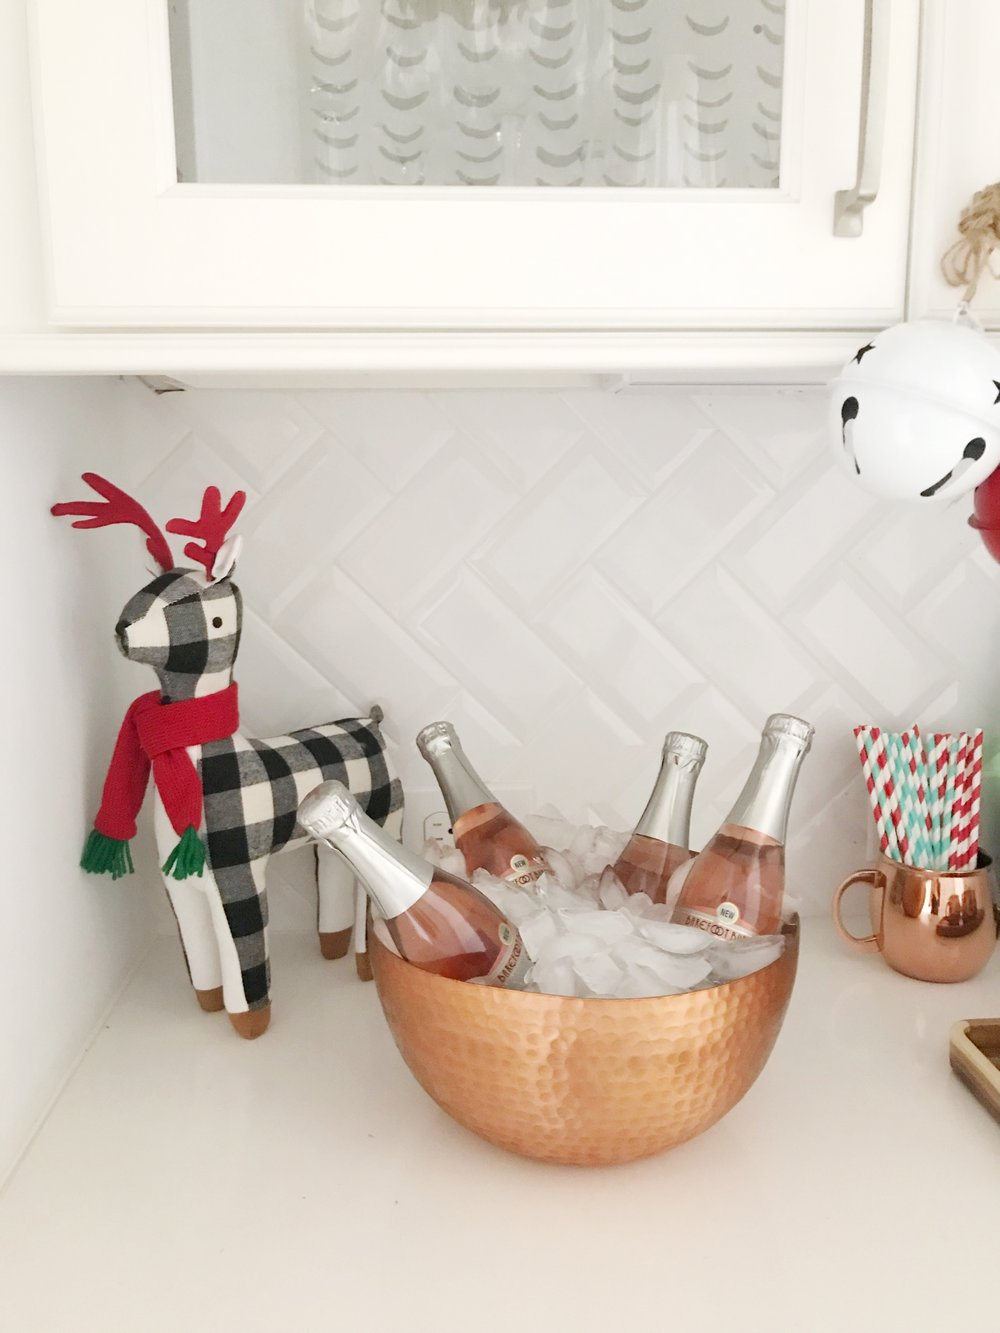 Styling Guide: Refreshing or Creating a Bar Area At The Holidays!